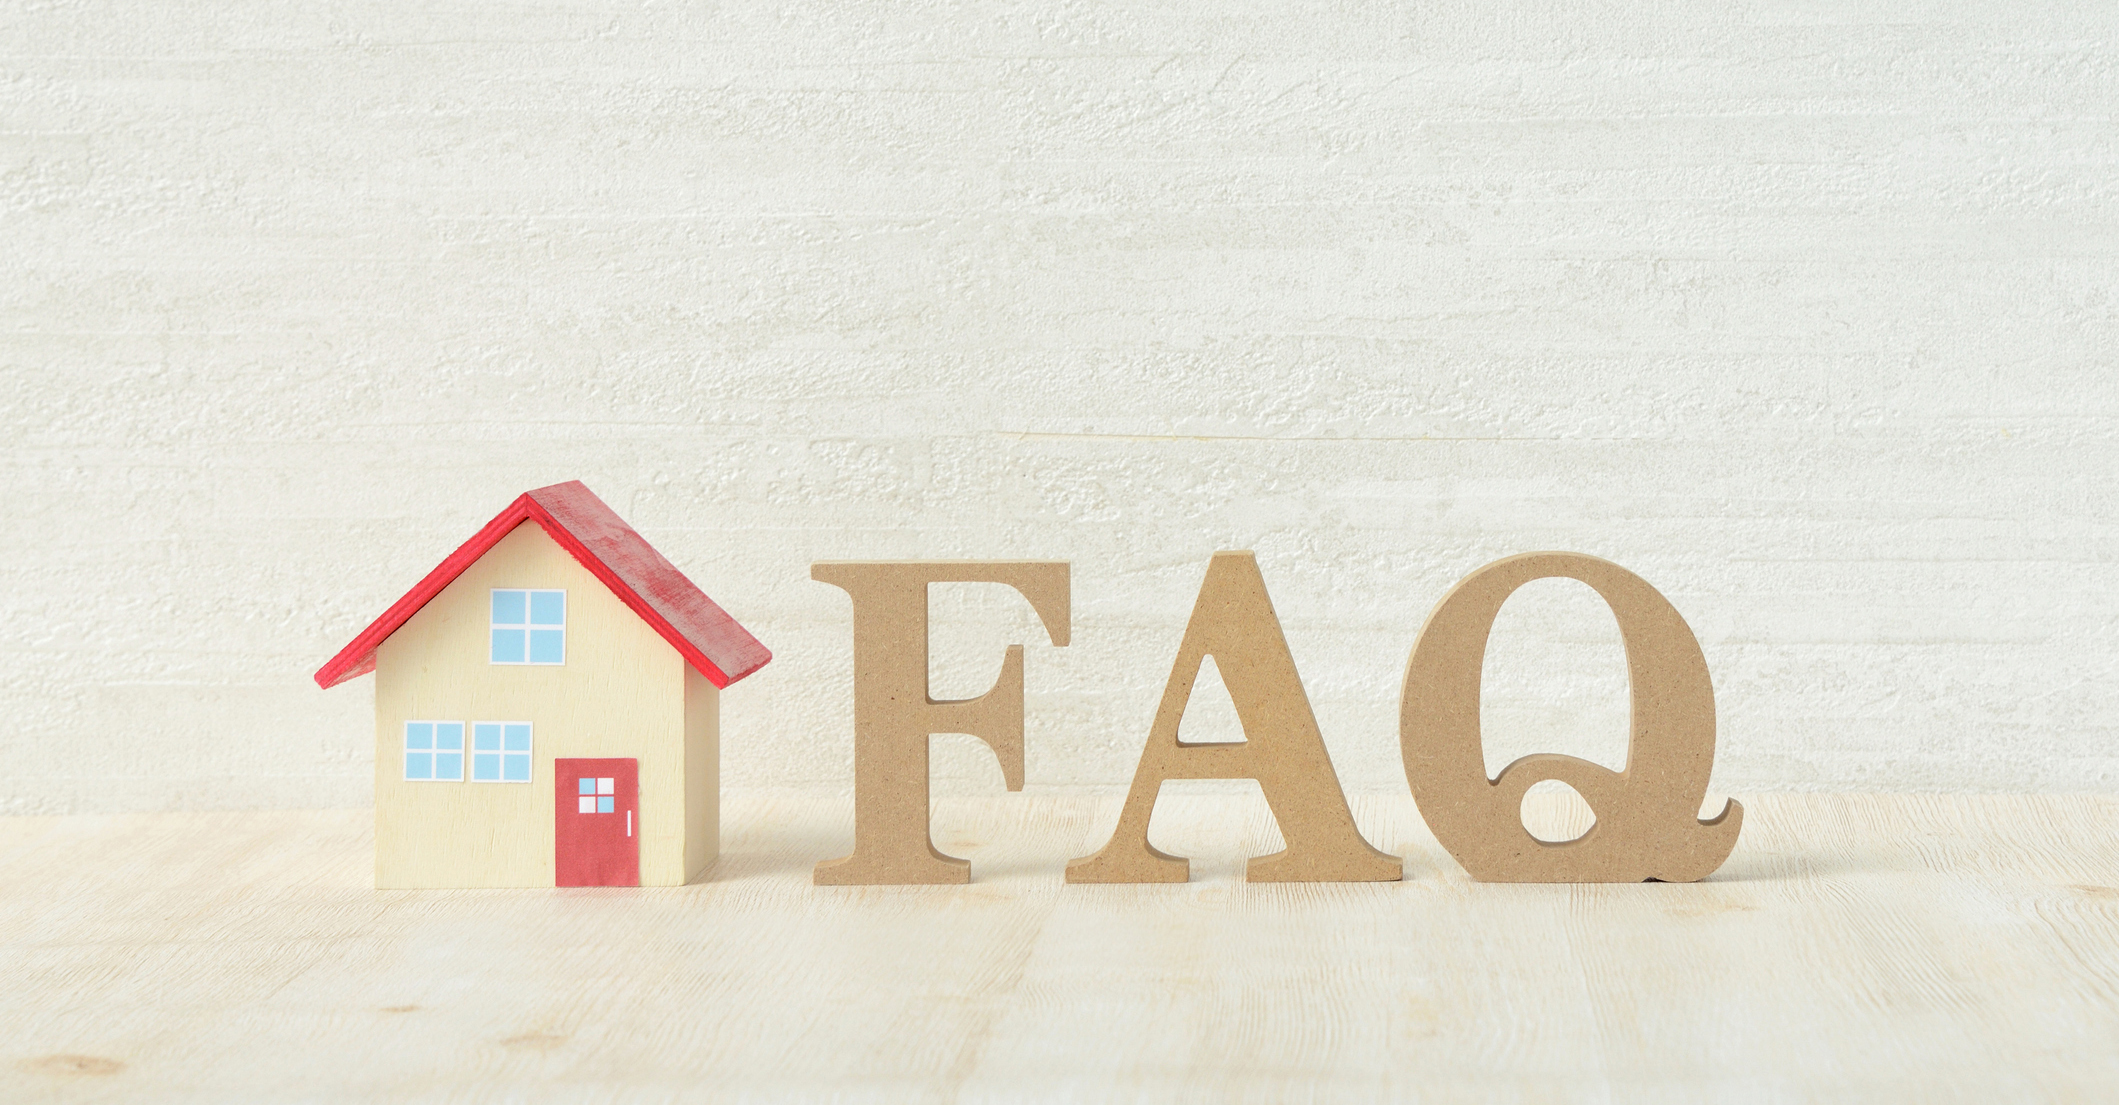 Small toy home next to the letters FAQ